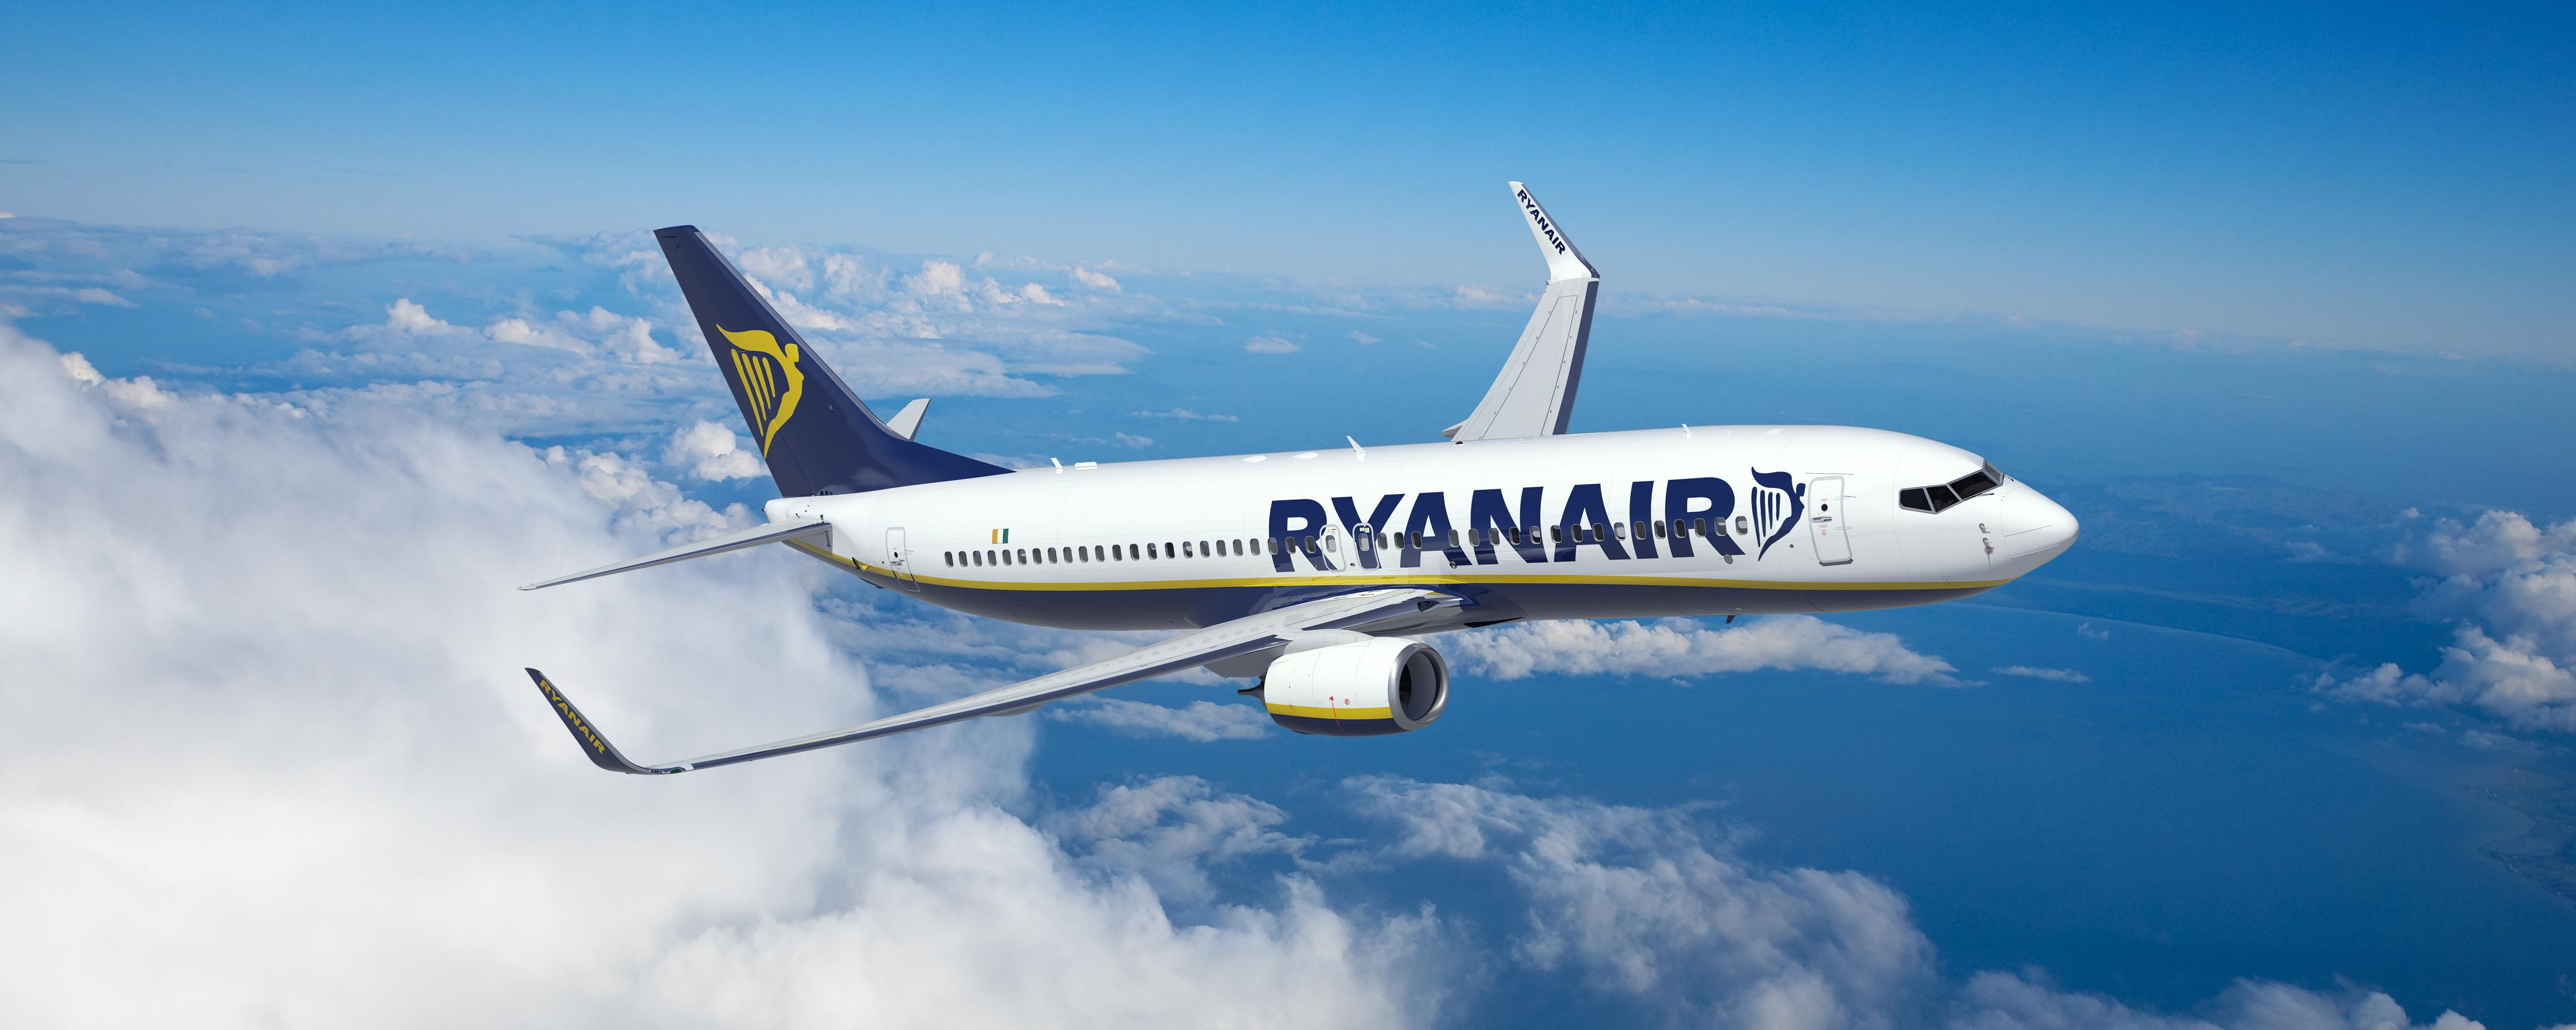 Ryanair Chief Technology Officer to speak in Cork